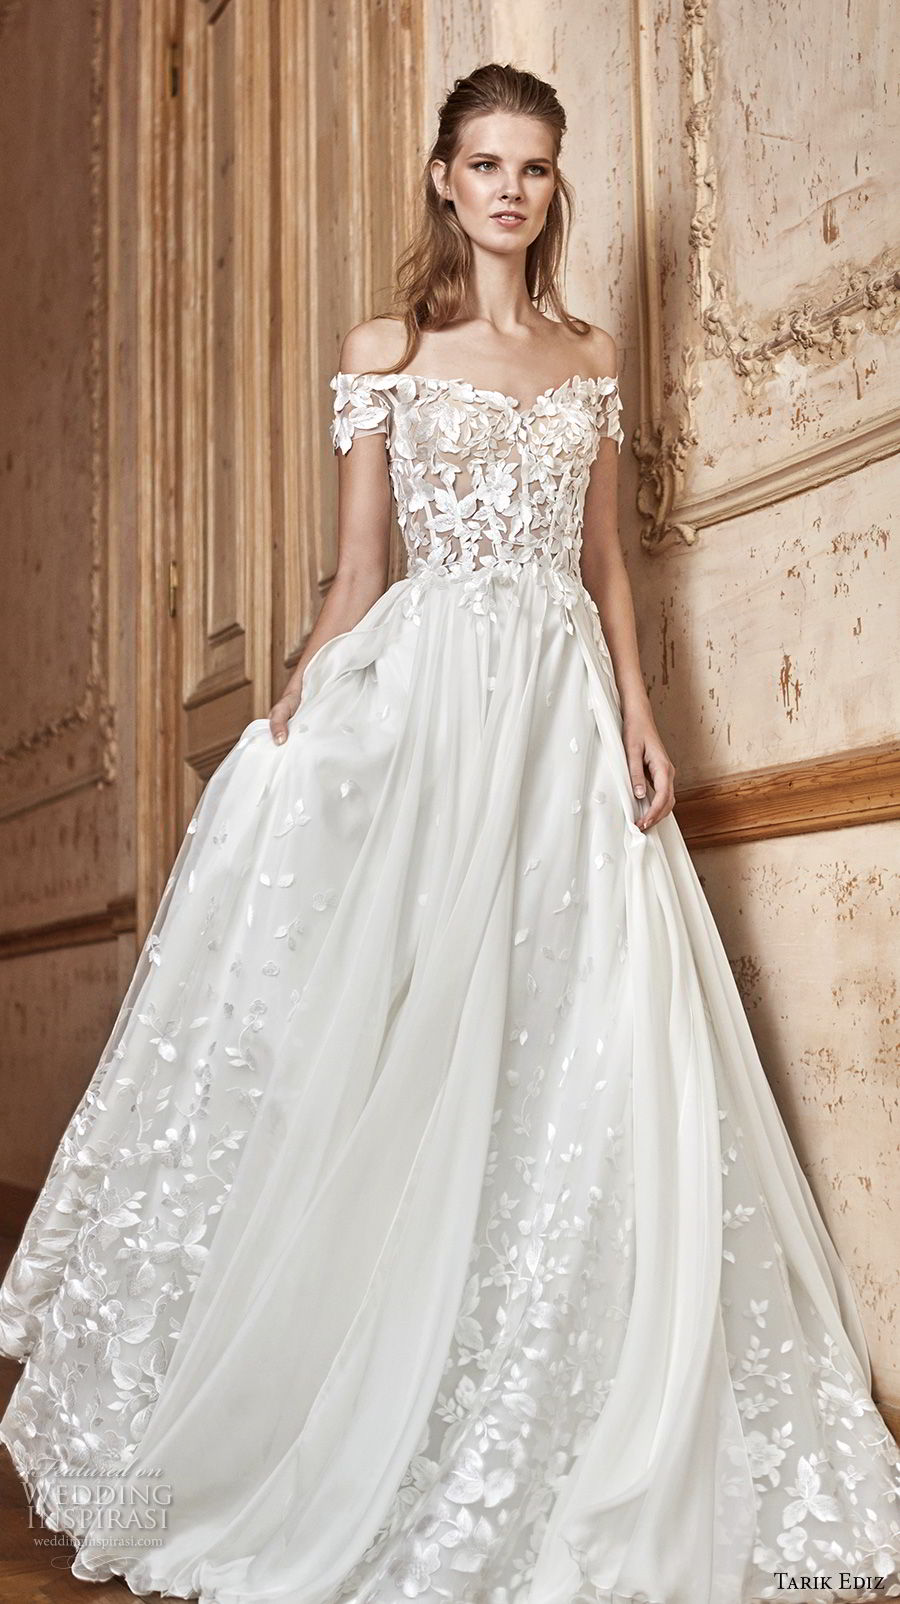 tarik ediz 2017 bridal off the shoulder sweetheart neckline heavily embellished bodice romantic a line wedding dress (28) mv